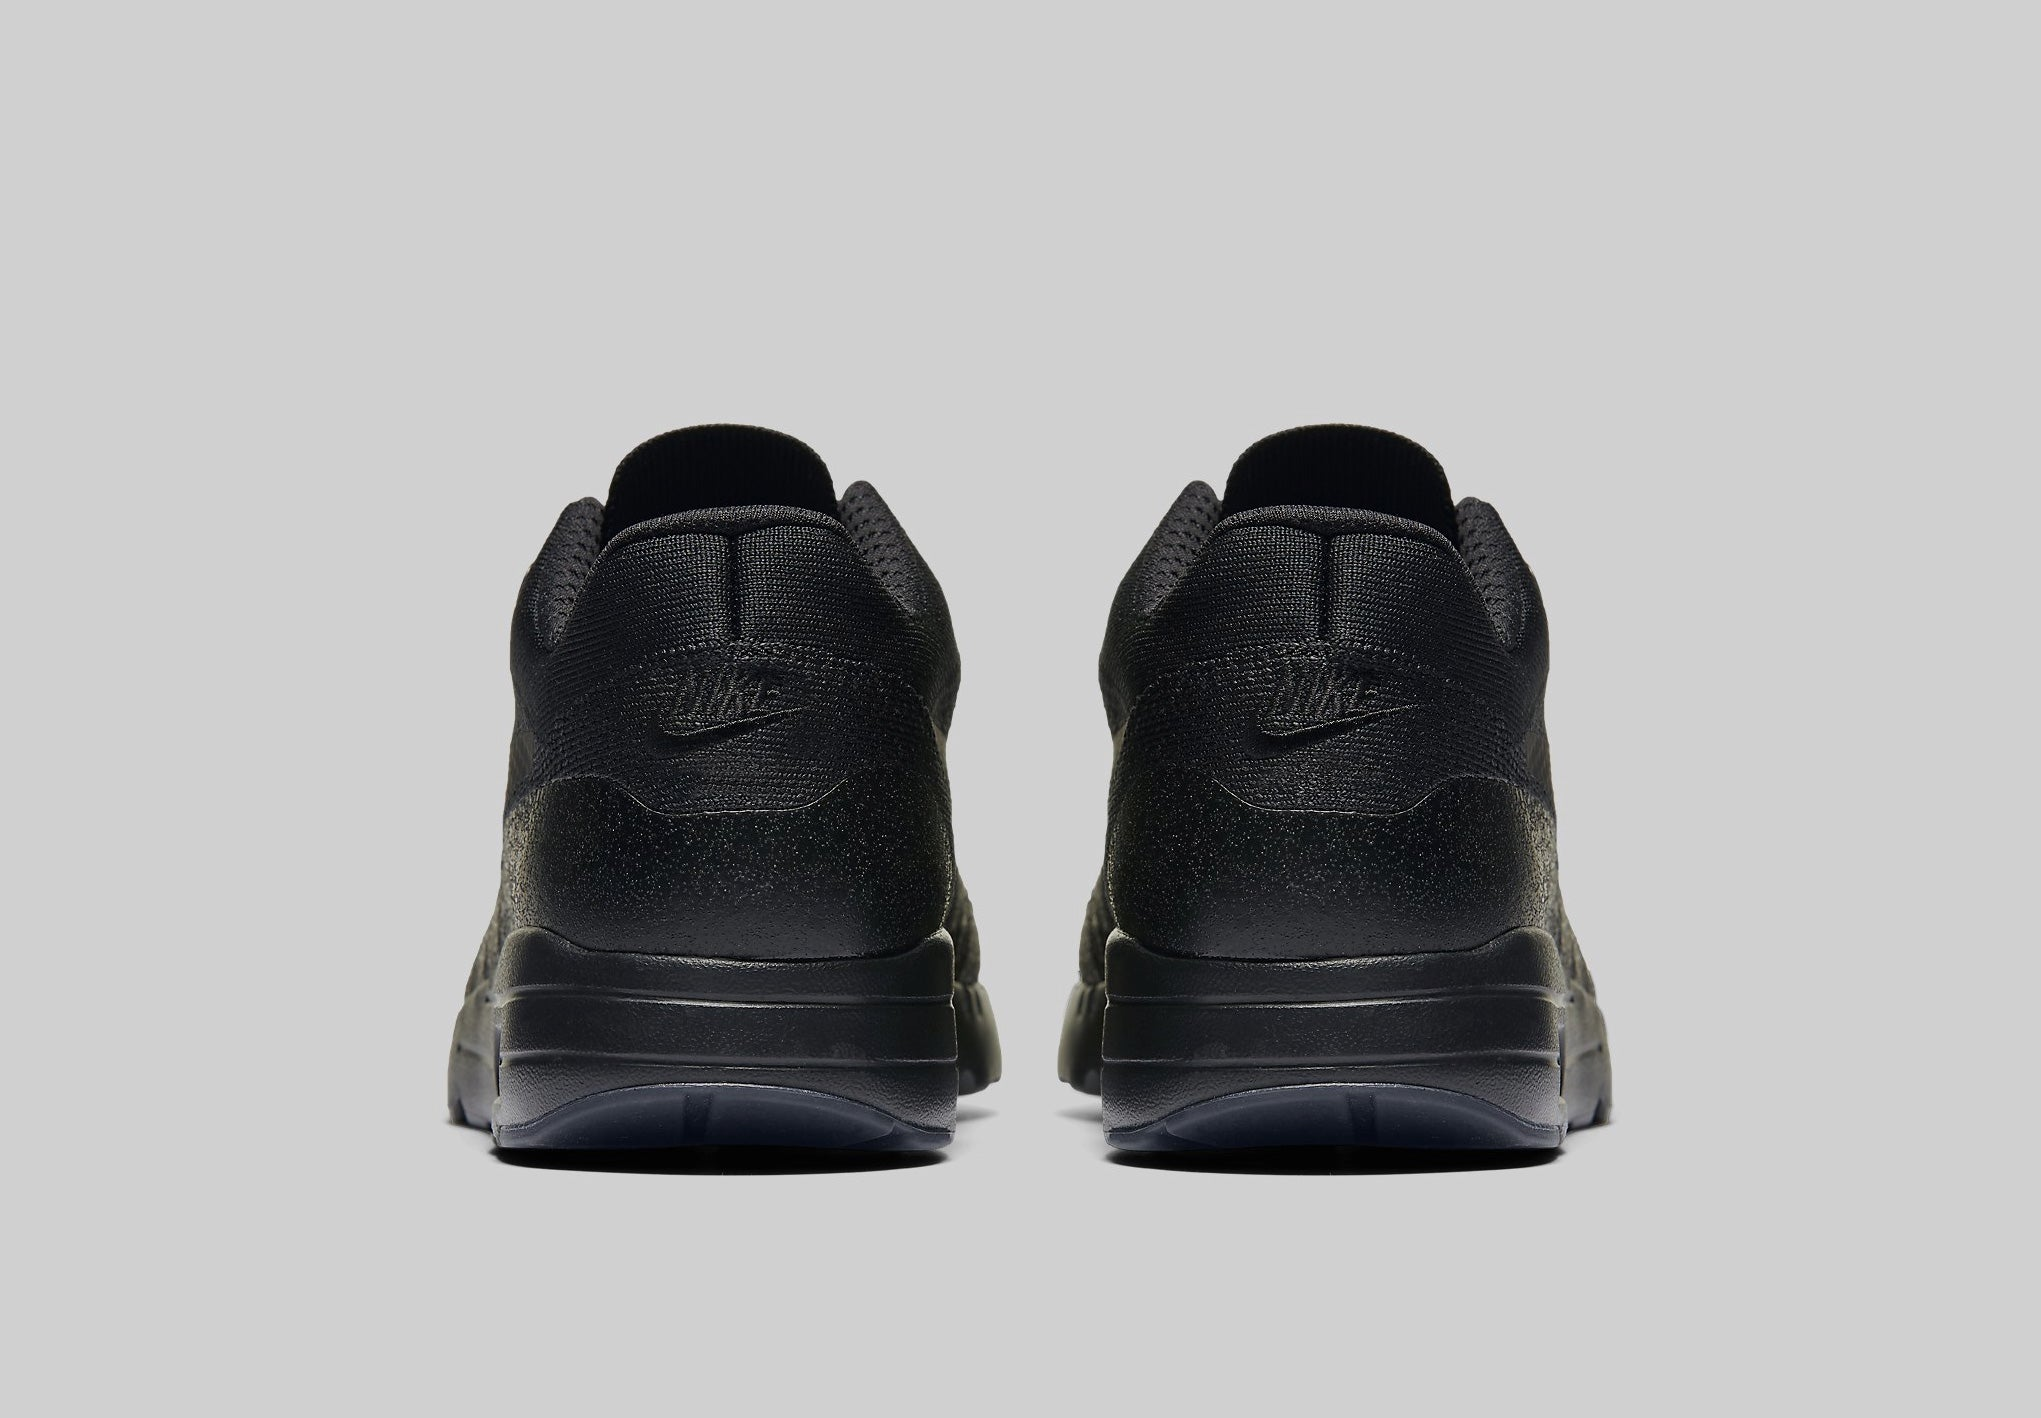 huge selection of f09f0 03bba The Nike Air Max 1 Ultra Flyknit at The Chimp Store